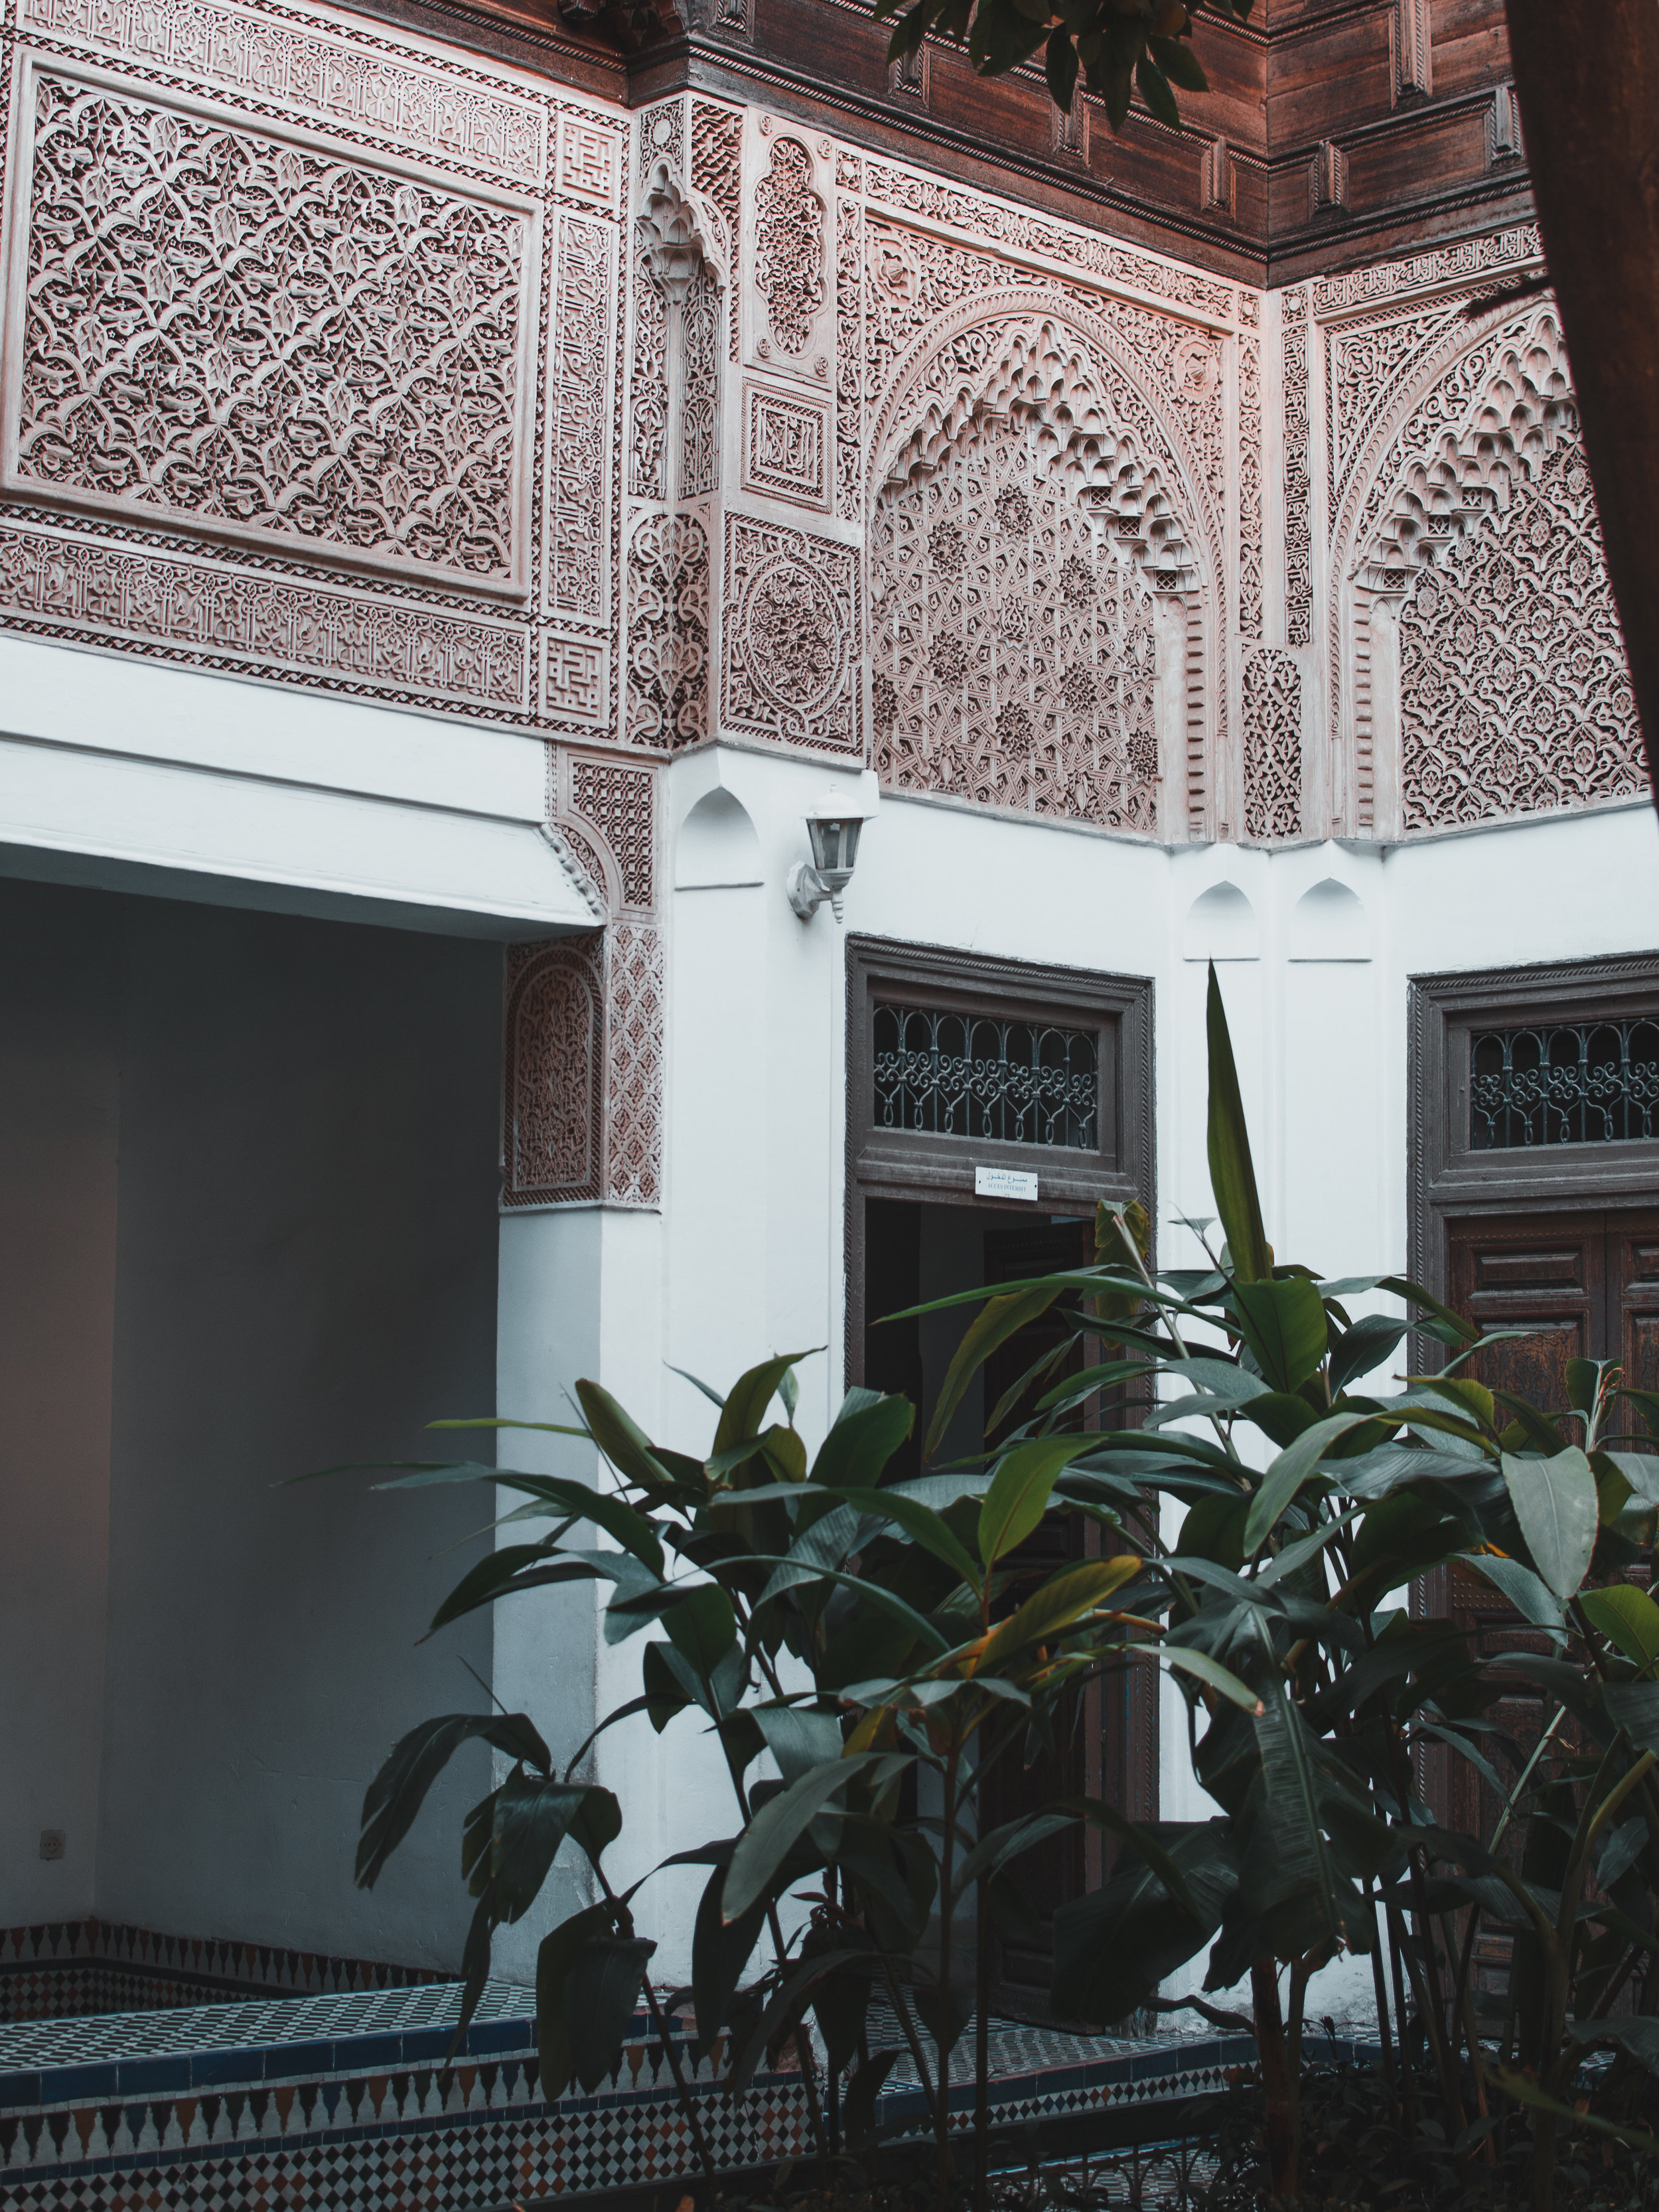 Spend some time exploring the Bahia Palace in Marrakech